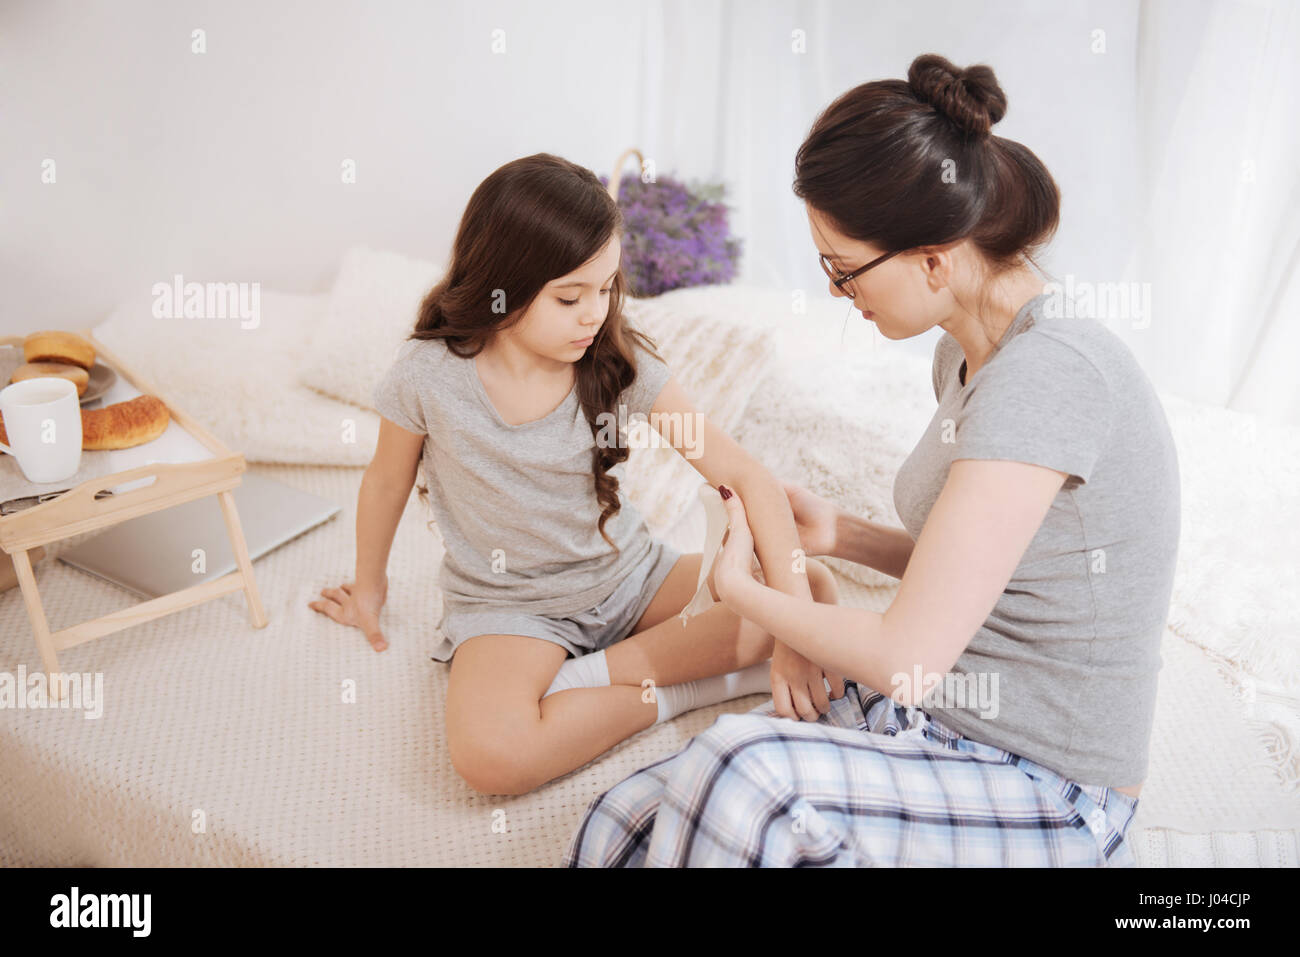 Young mother bandaging her child elbow at home - Stock Image